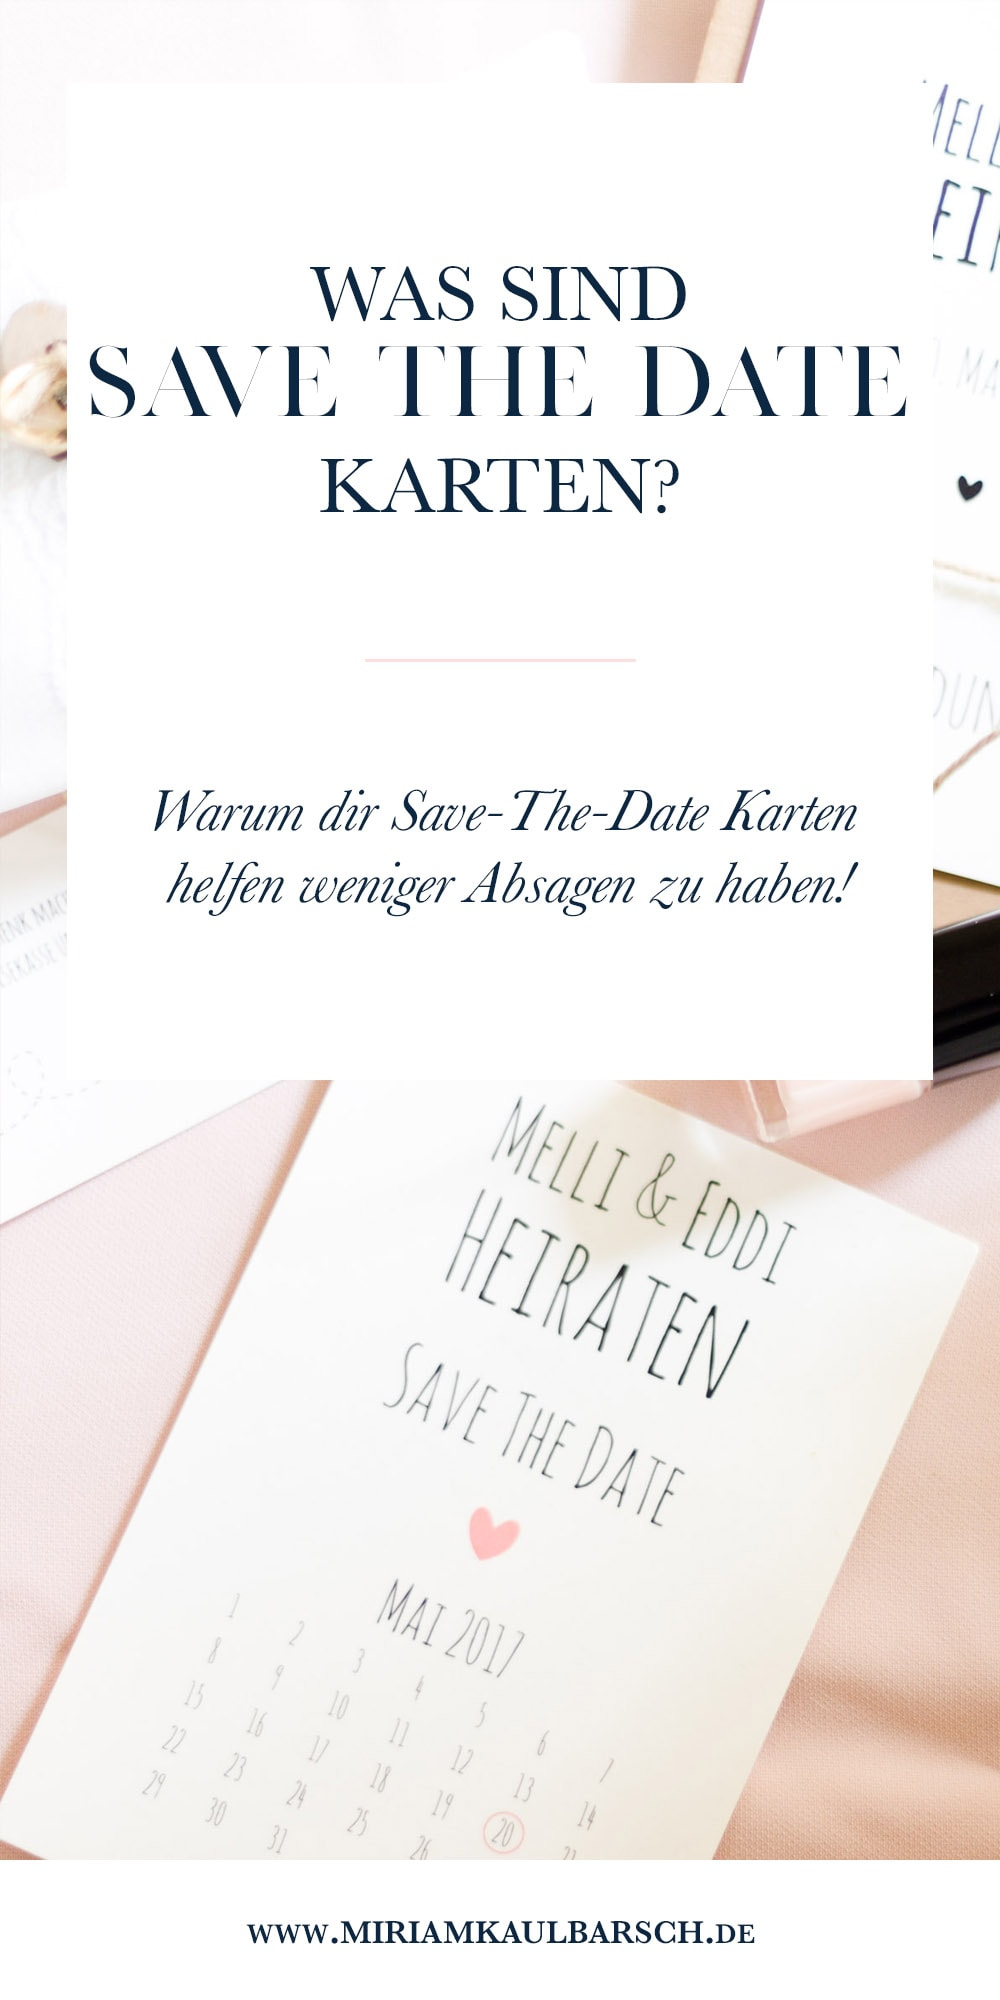 Was sind Save-The-Date Karten?